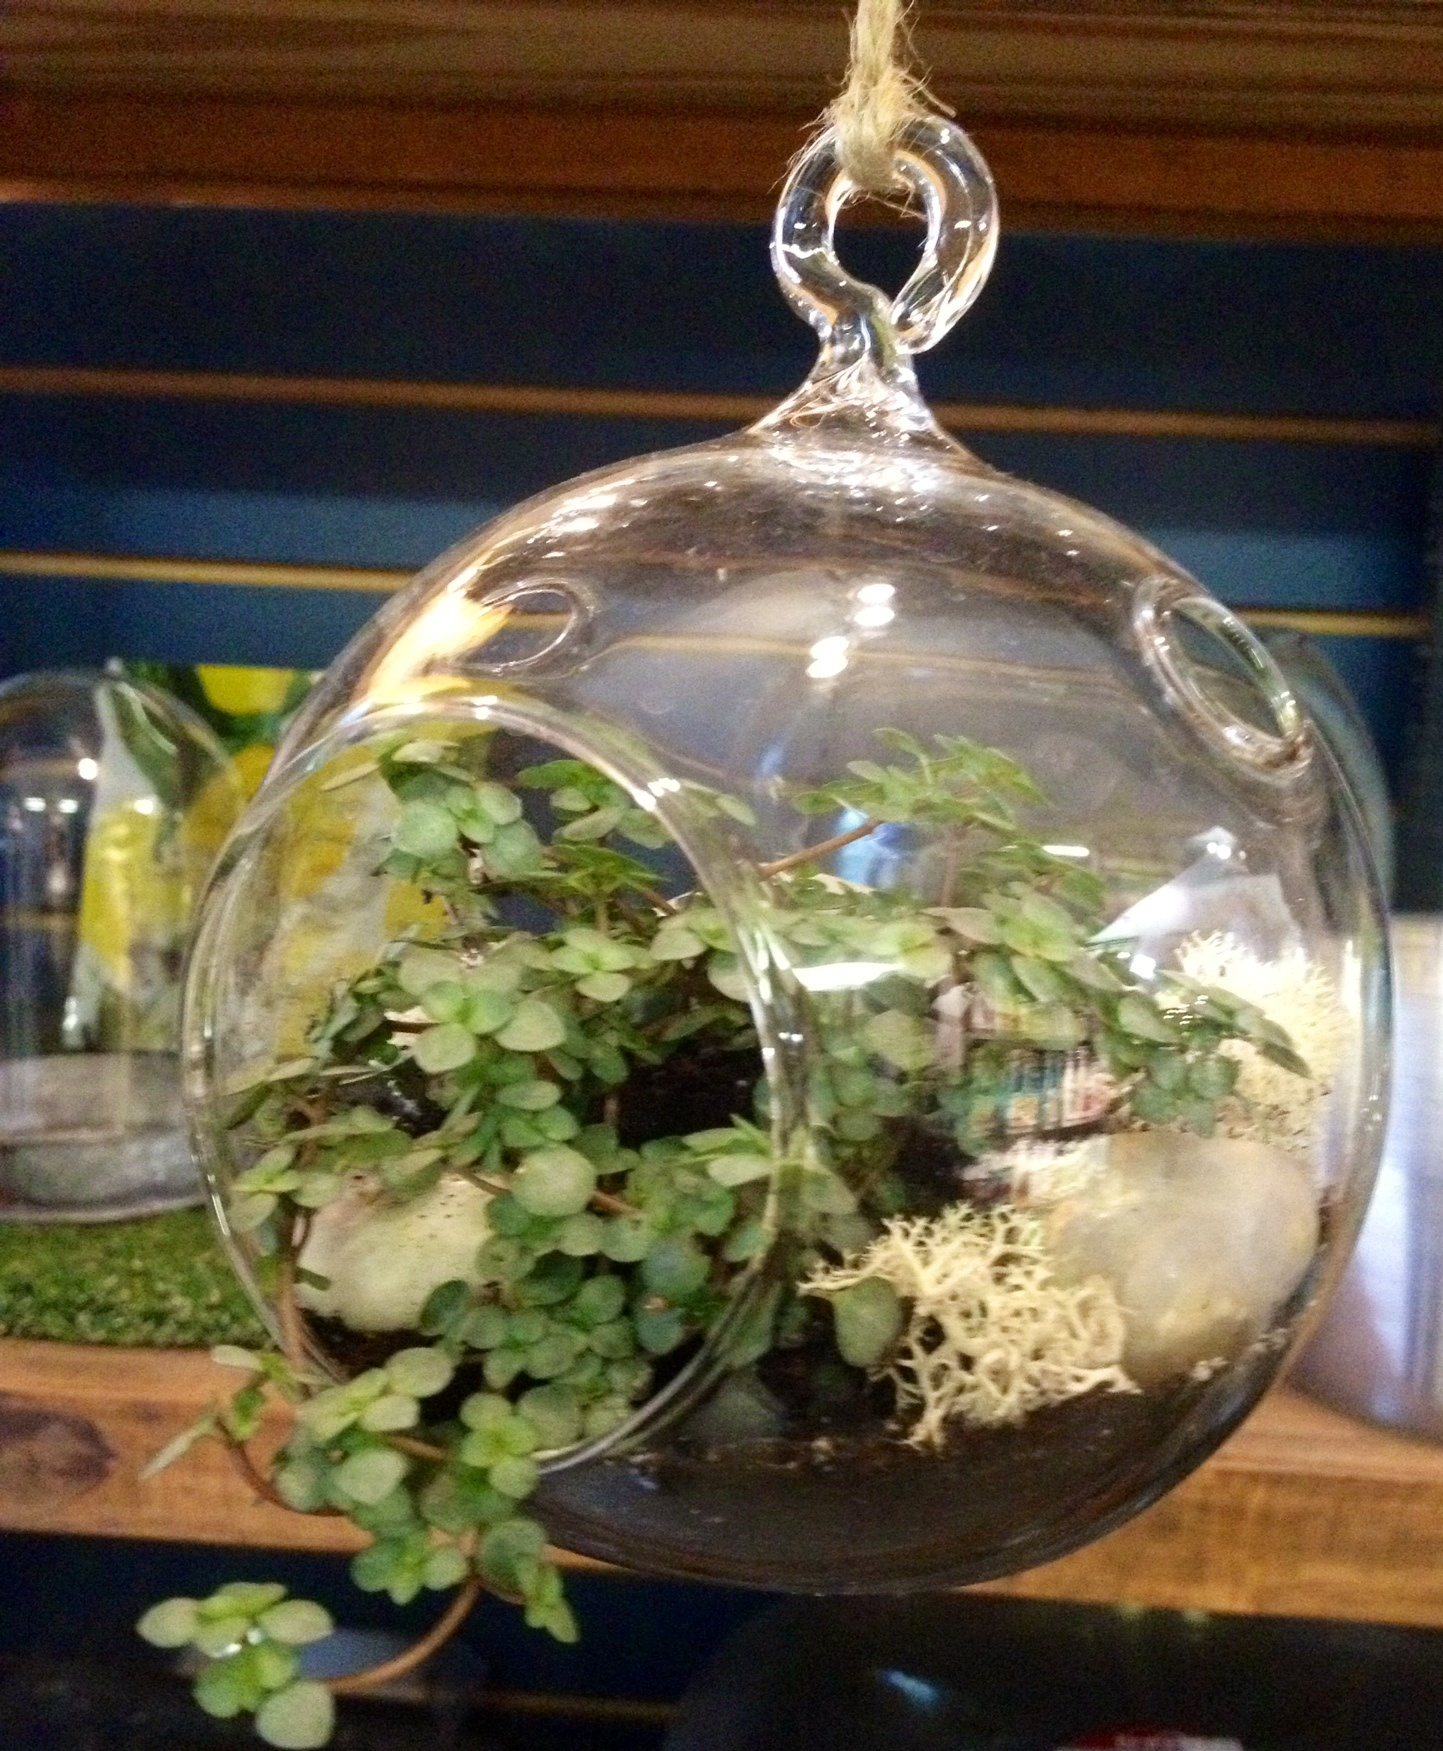 Dashing Fairy Gardens Oak Leaf Containers Fairy Gardens Make Your Terrariums Fairy Gardens Make Your Terrariums garden Containers For Fairy Gardens